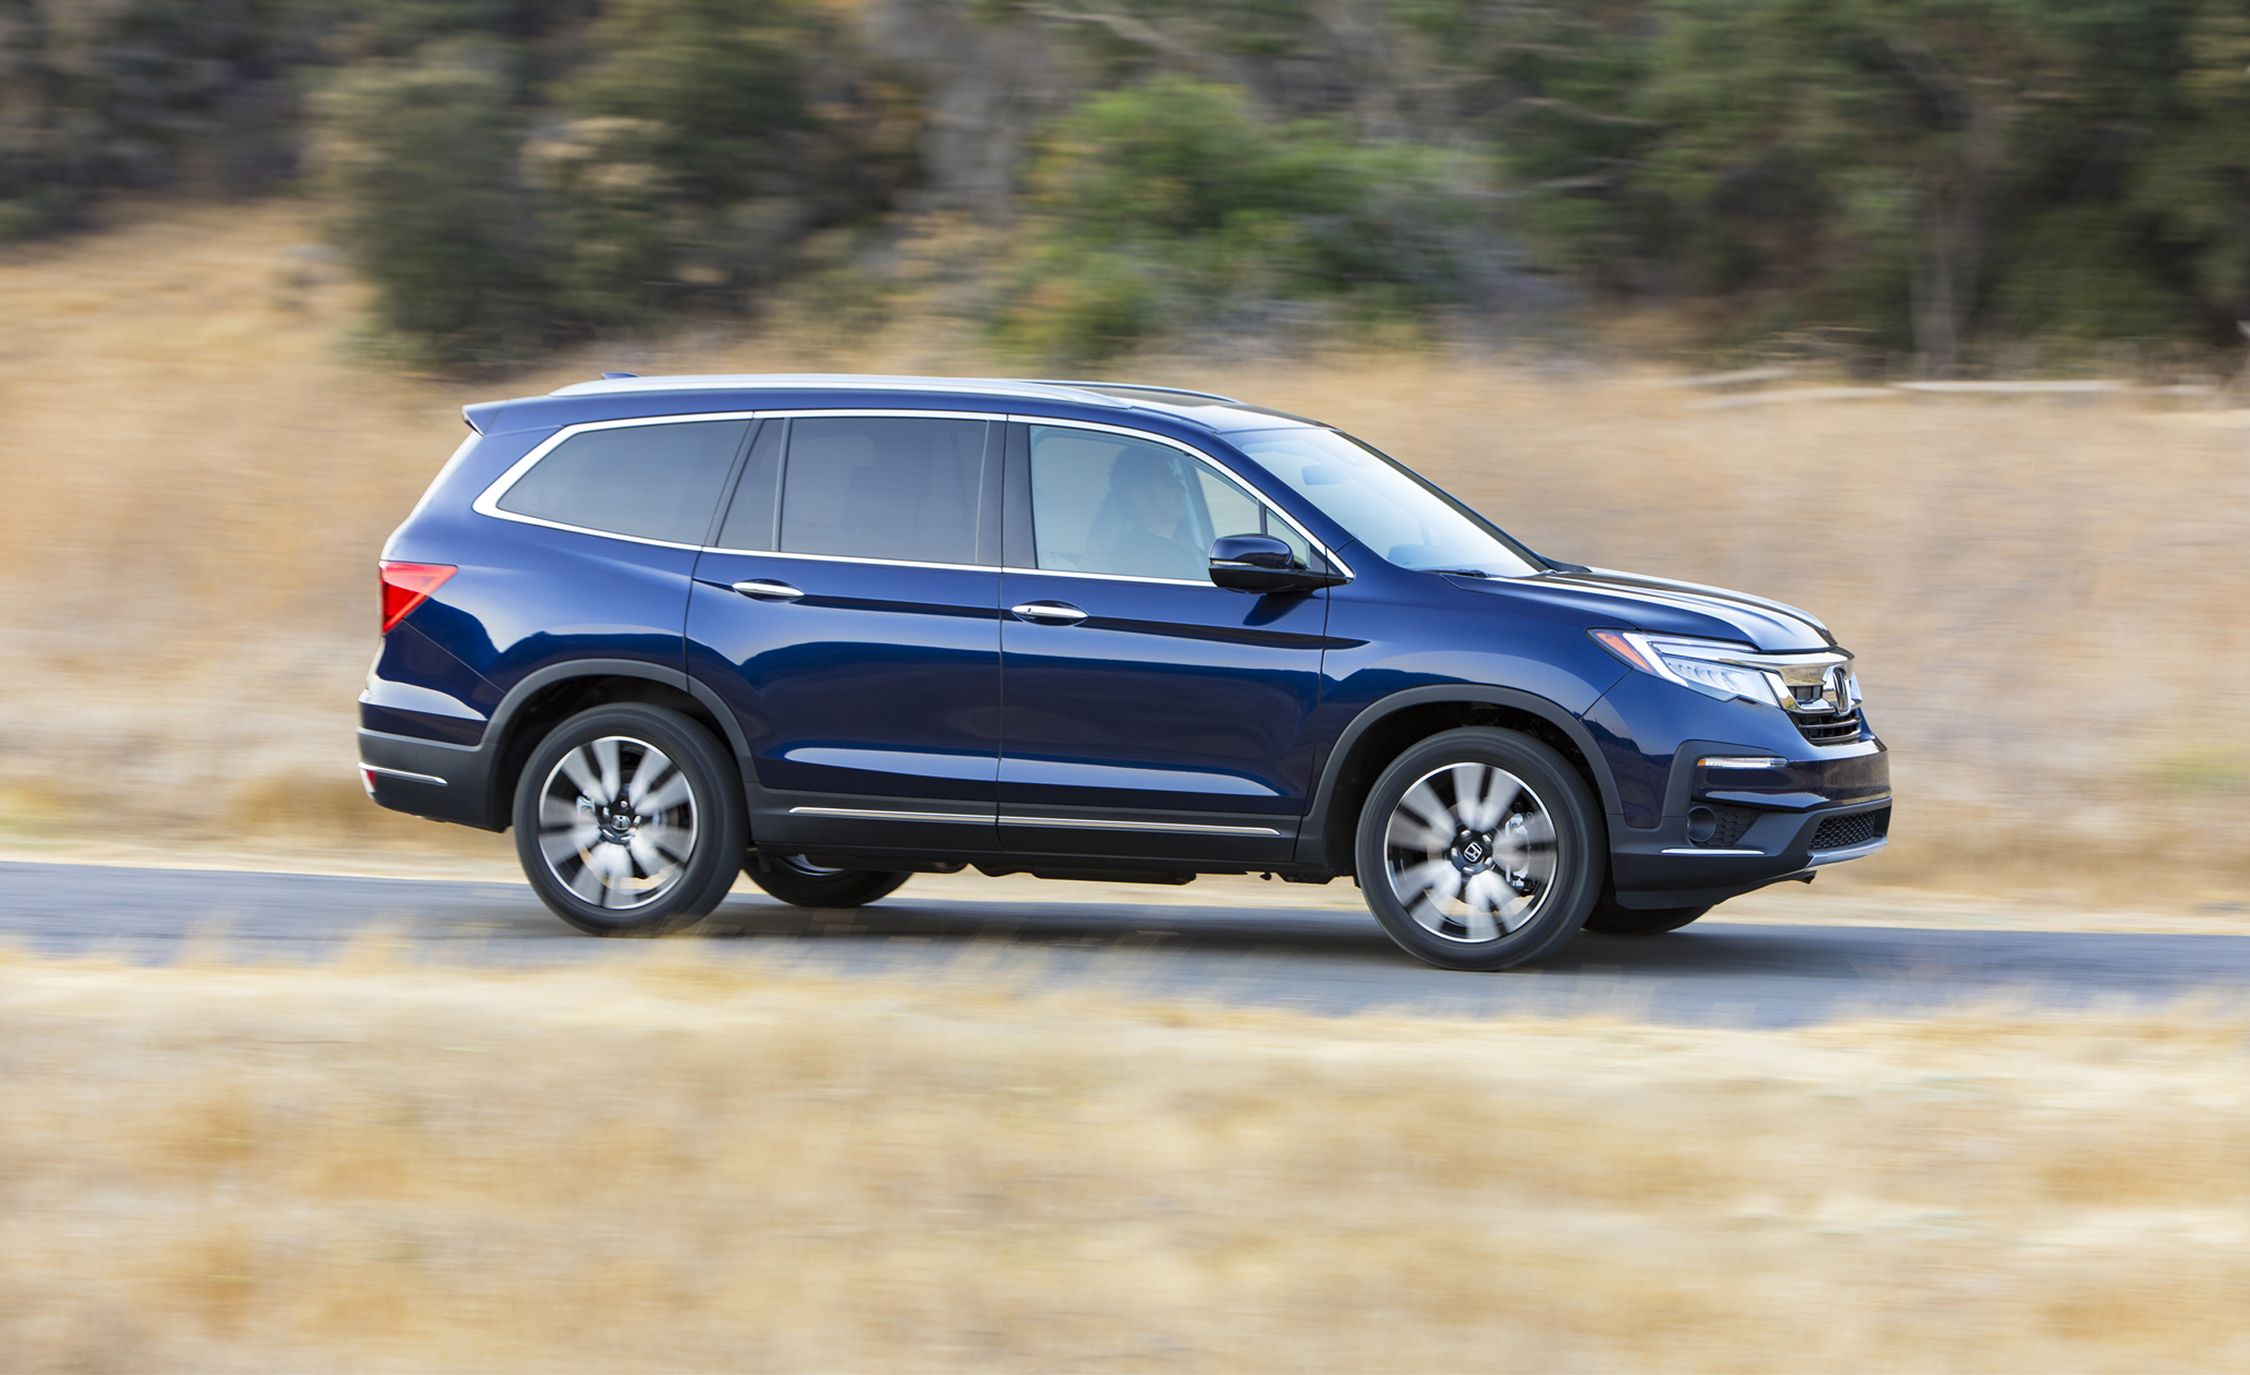 2019 Honda Pilot – Refreshed Looks, Better Driving